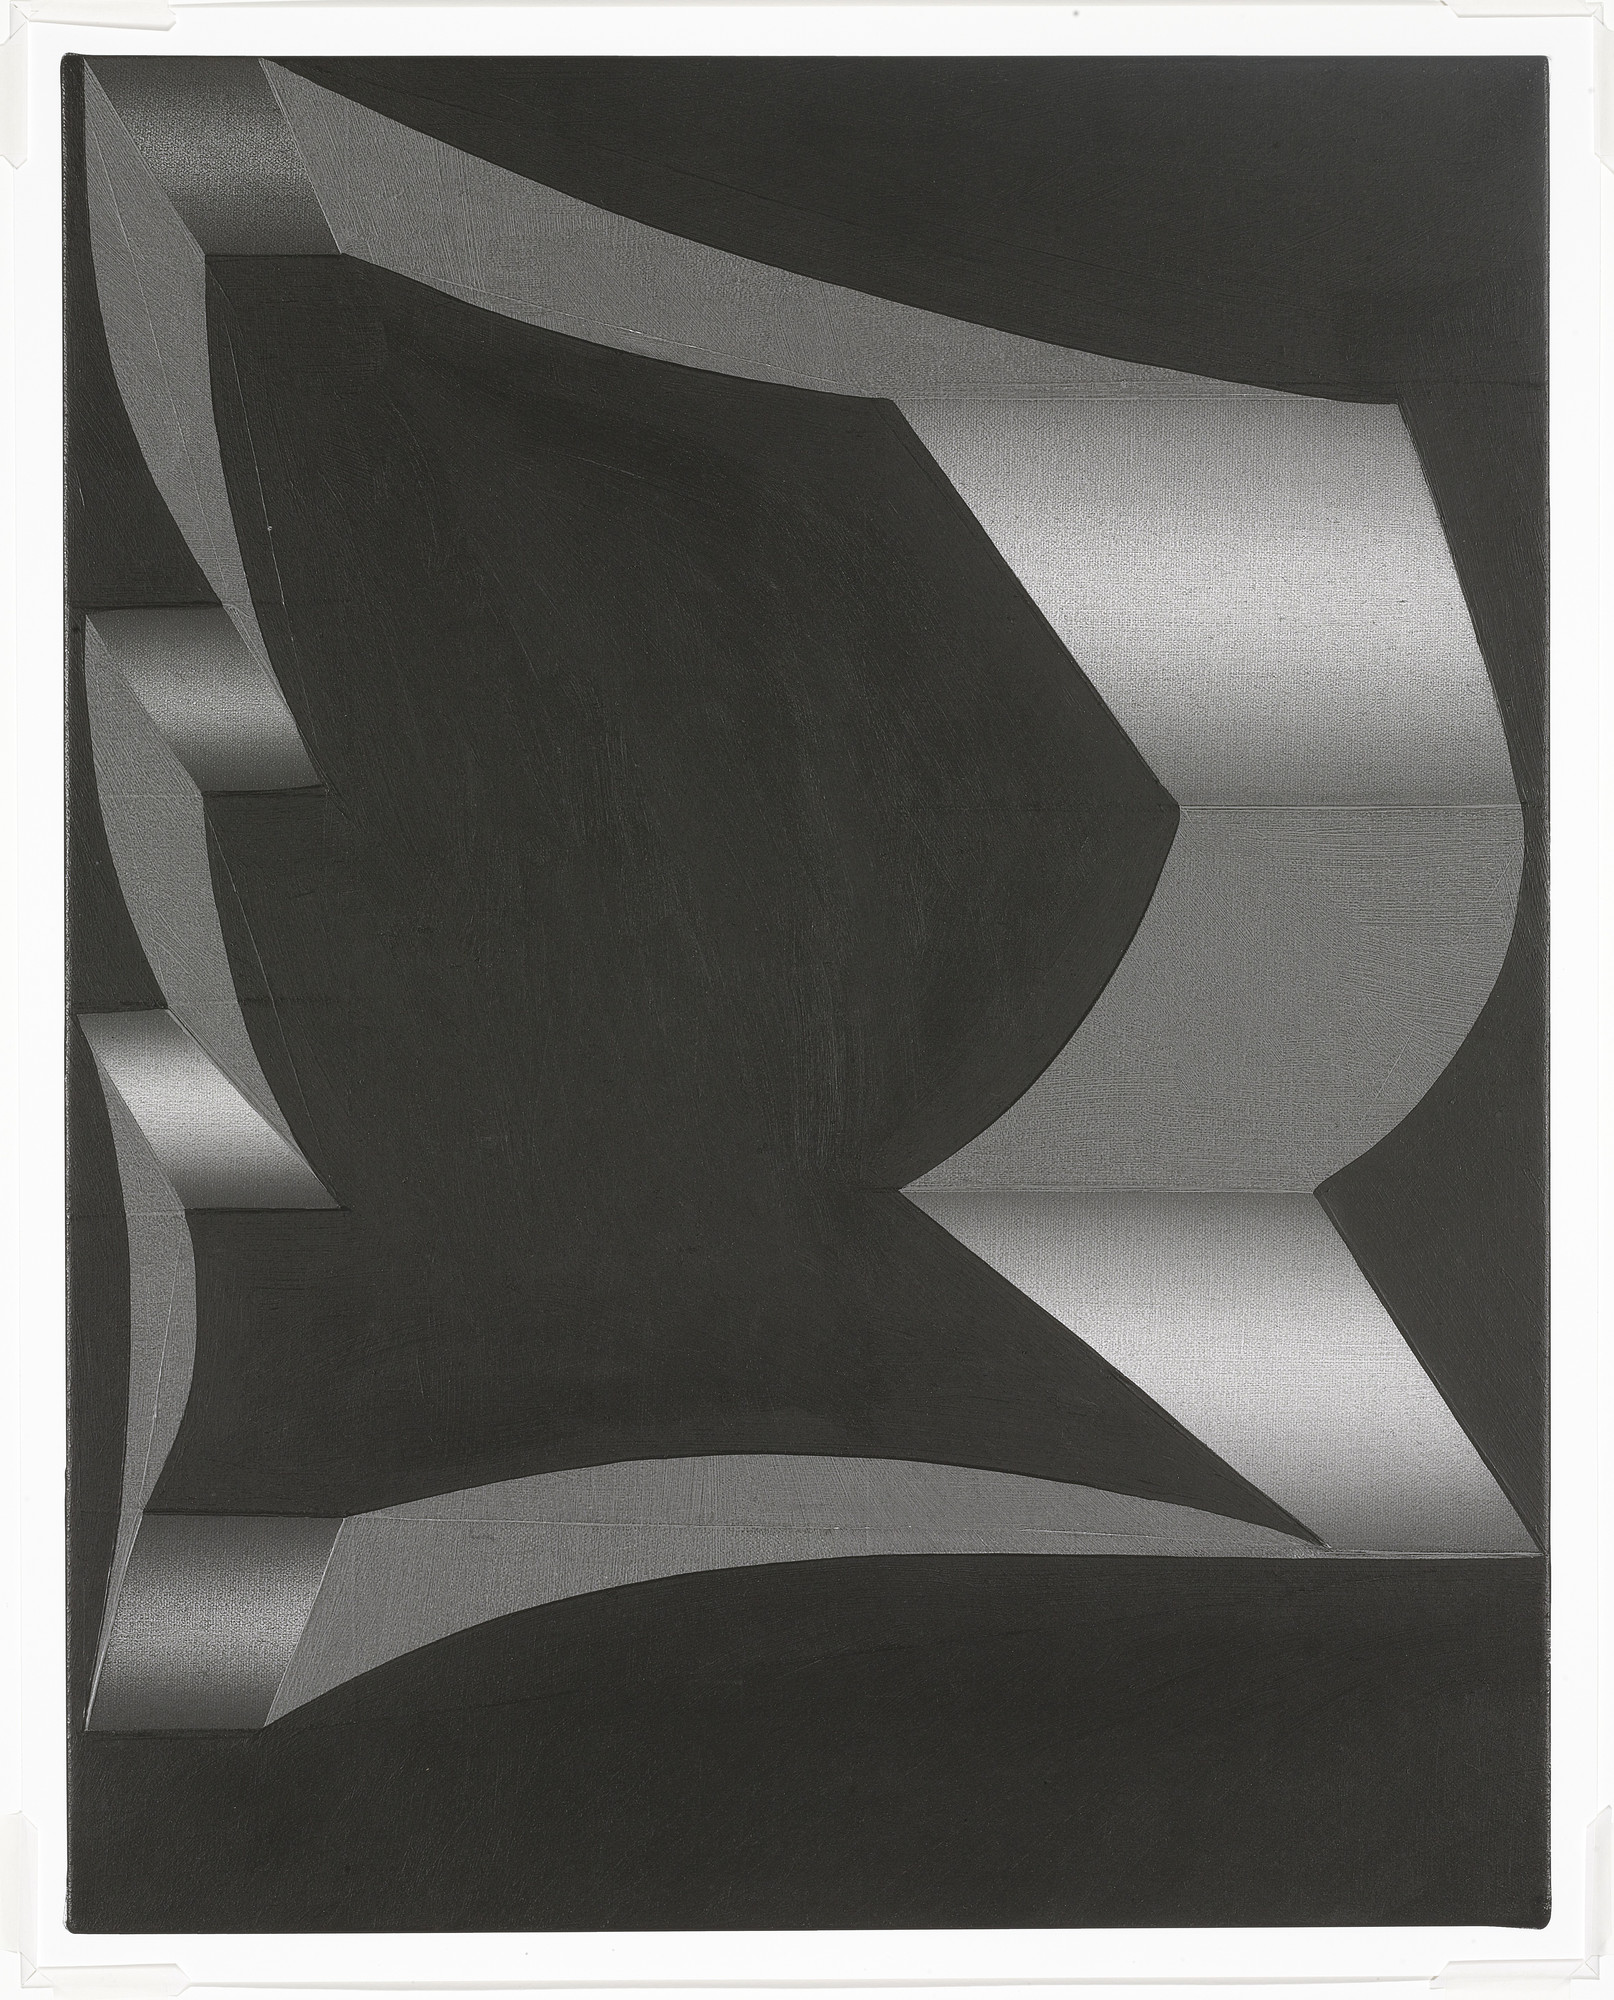 Tomma Abts. Untitled (Uto) (for Parkett no. 84). 2008